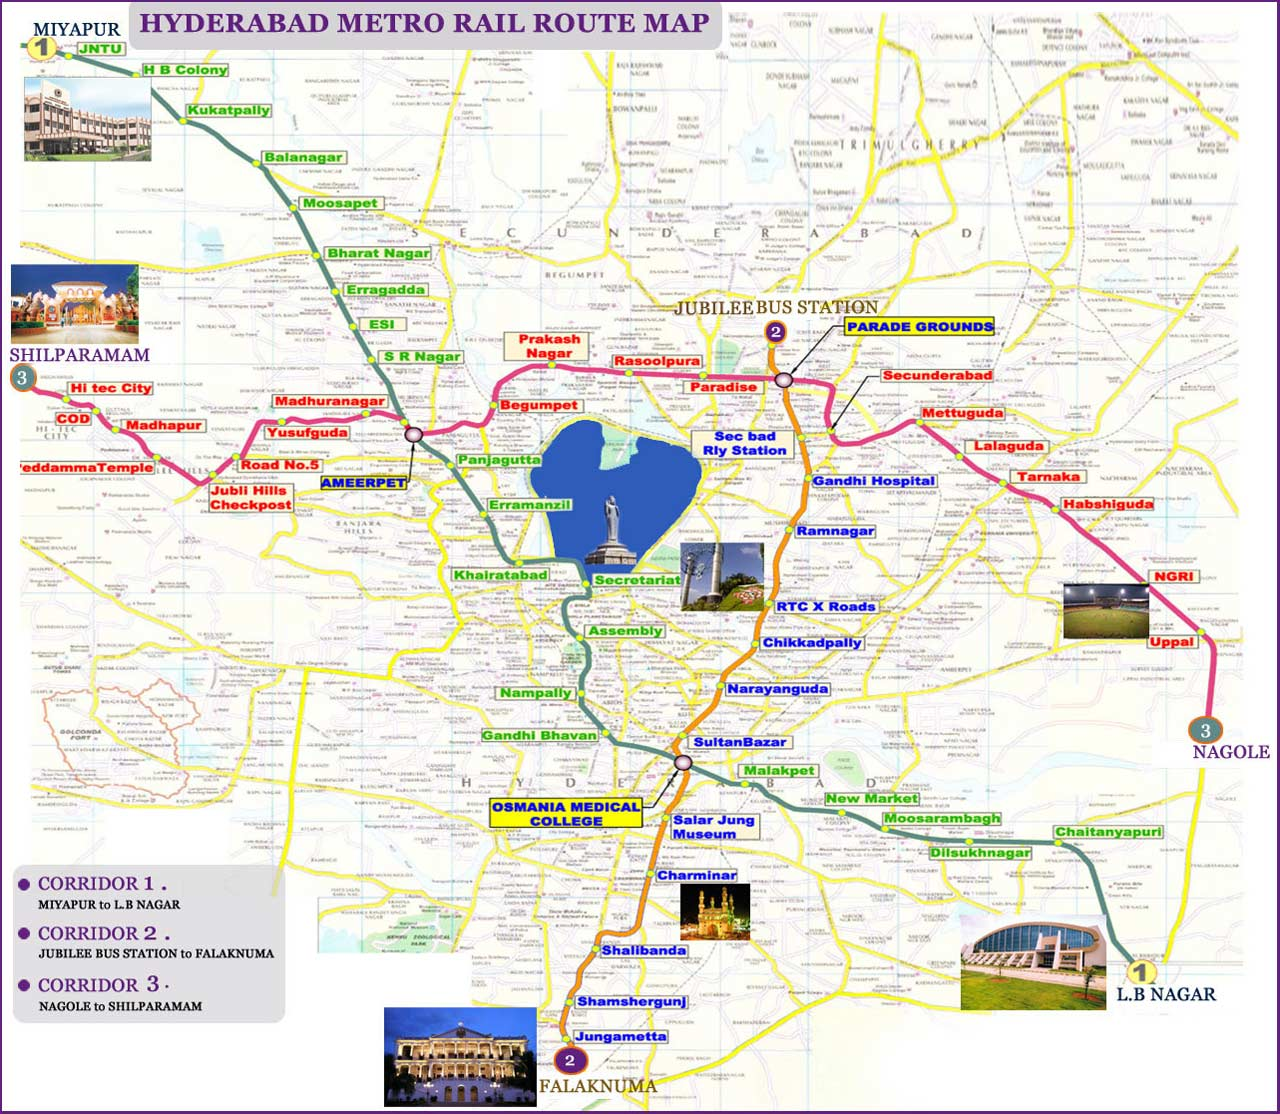 Subway Map of Hyderabad large map